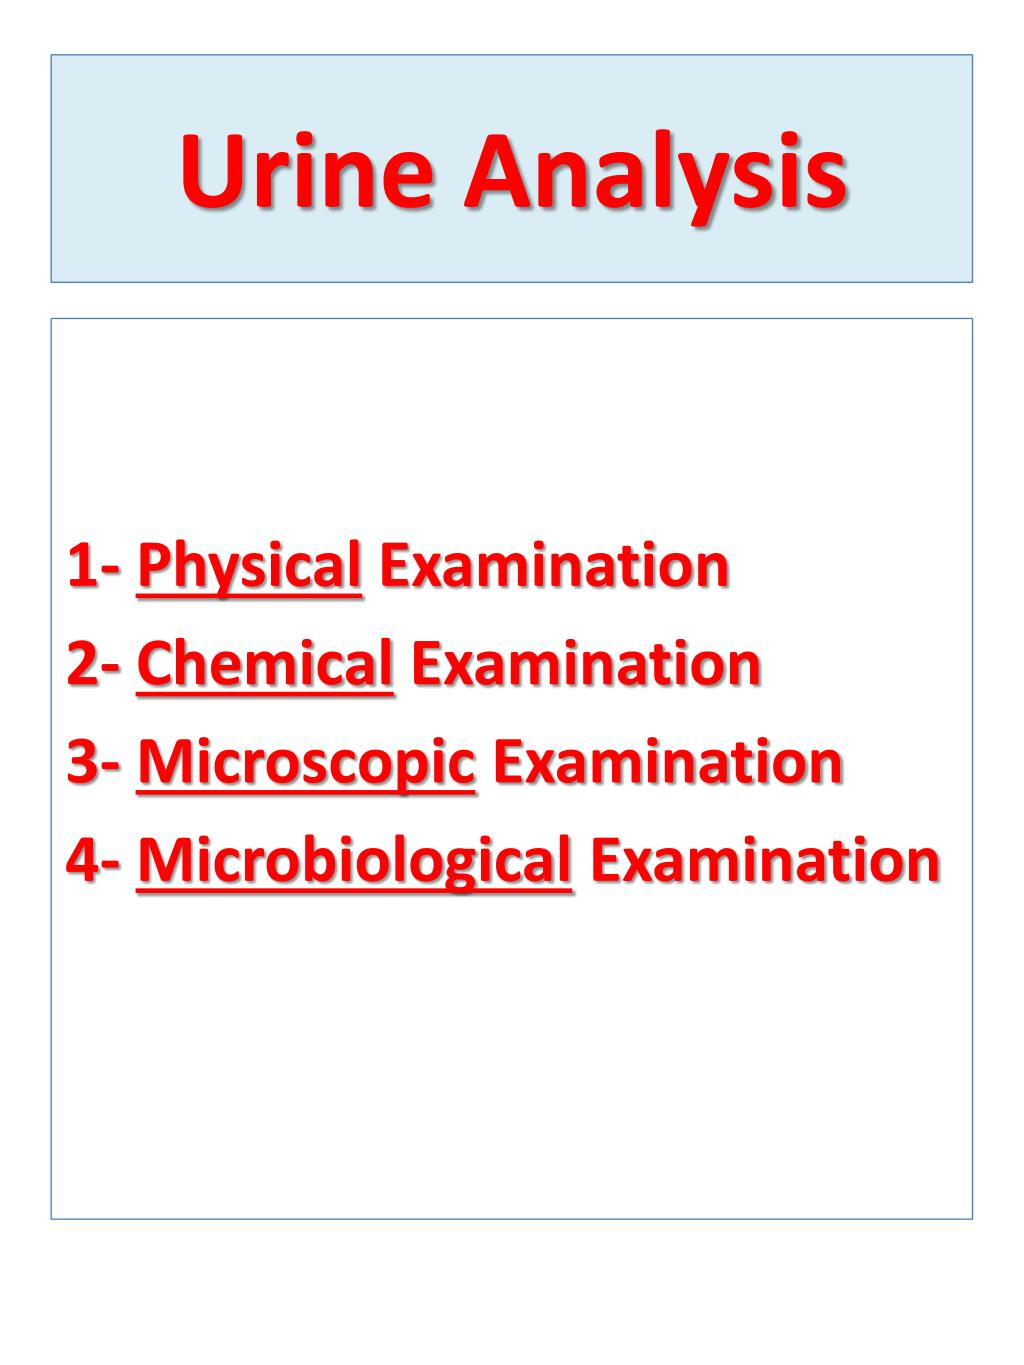 Microscopic examination of urine ppt download.